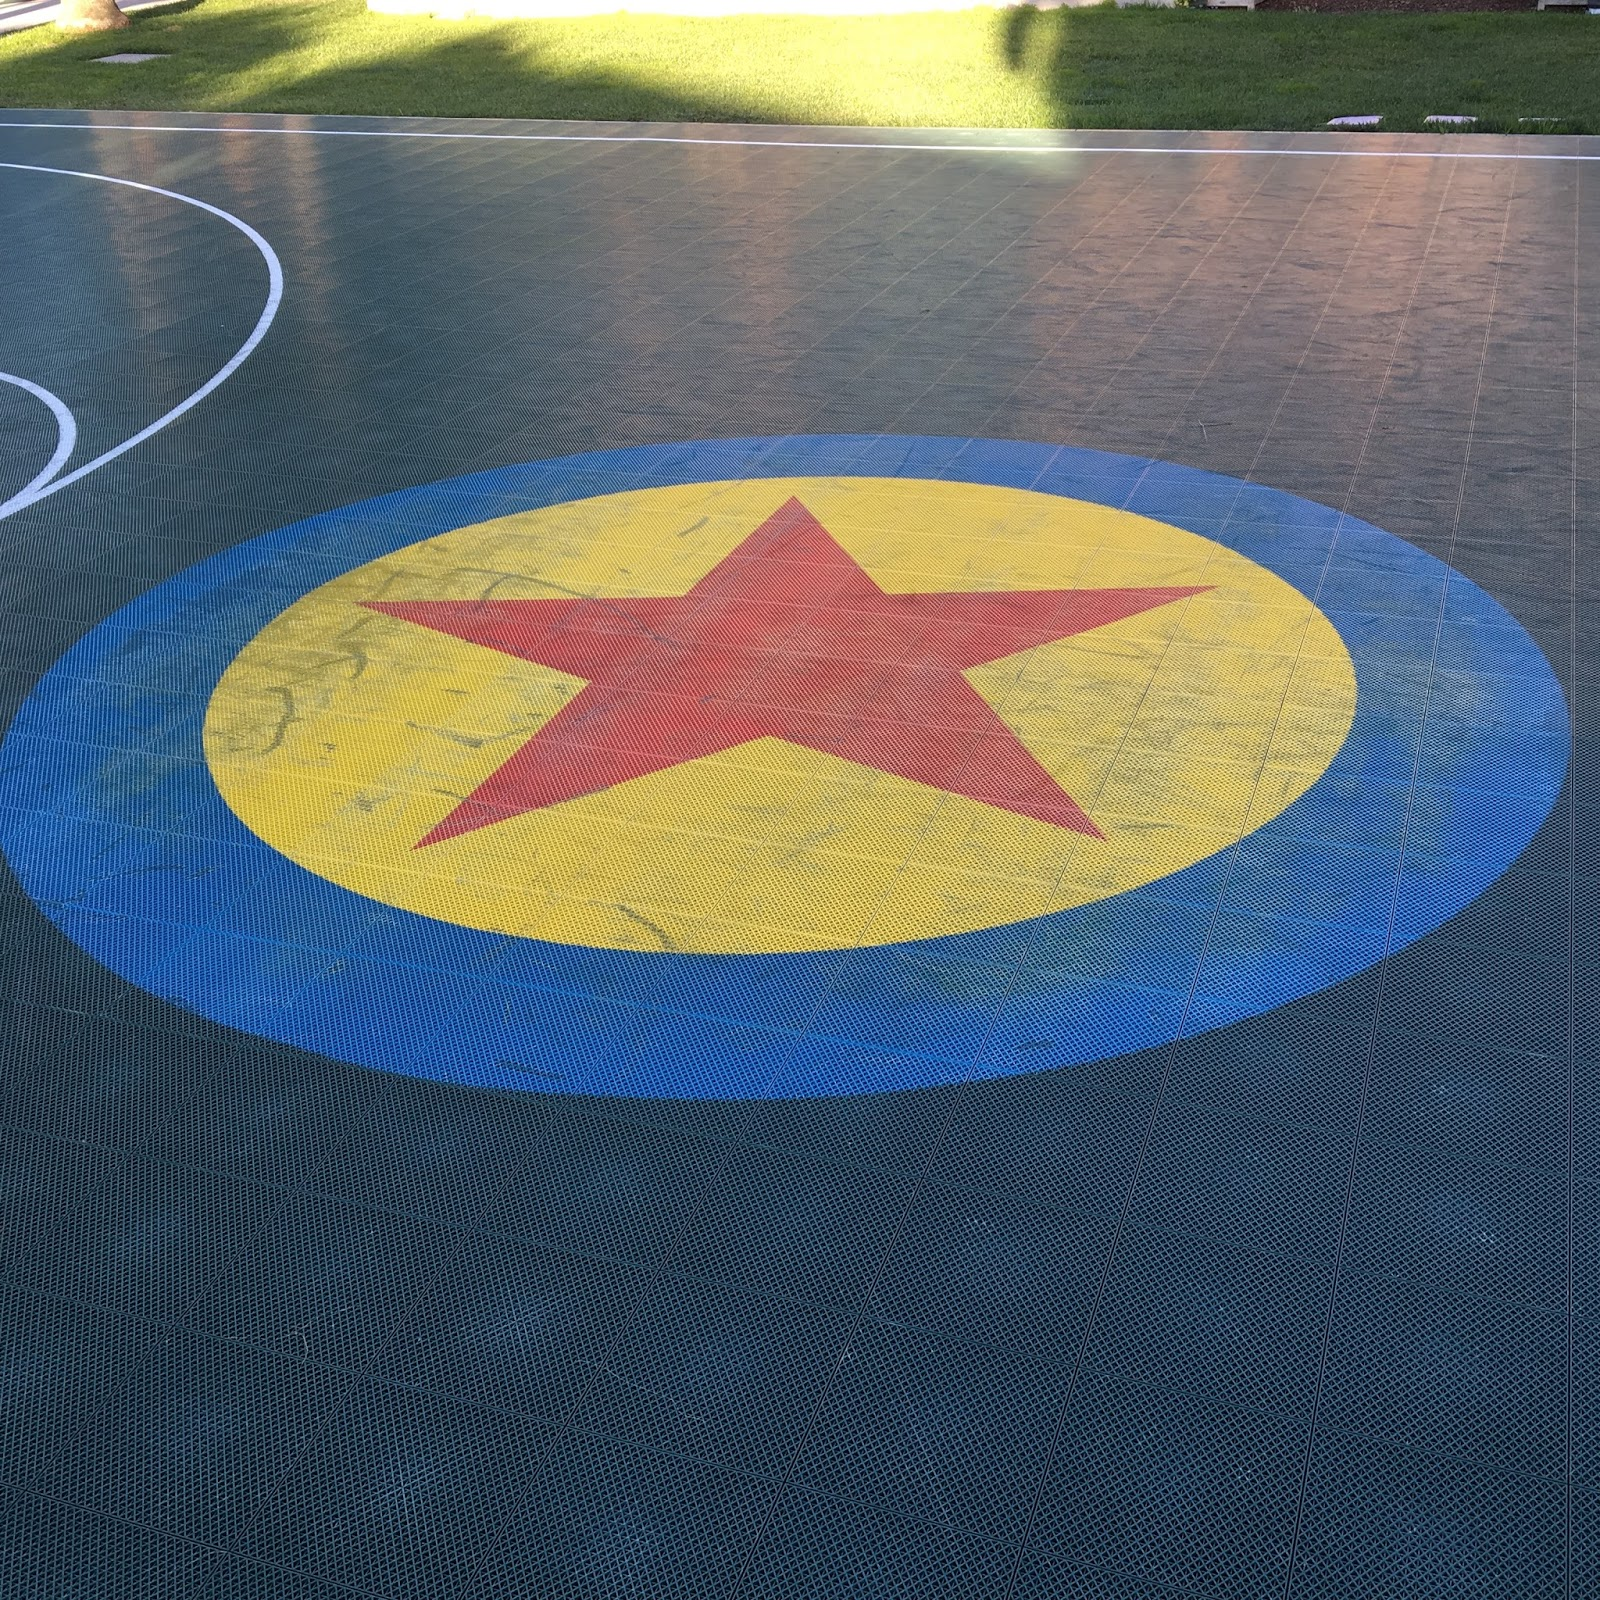 pixar studios basketball court